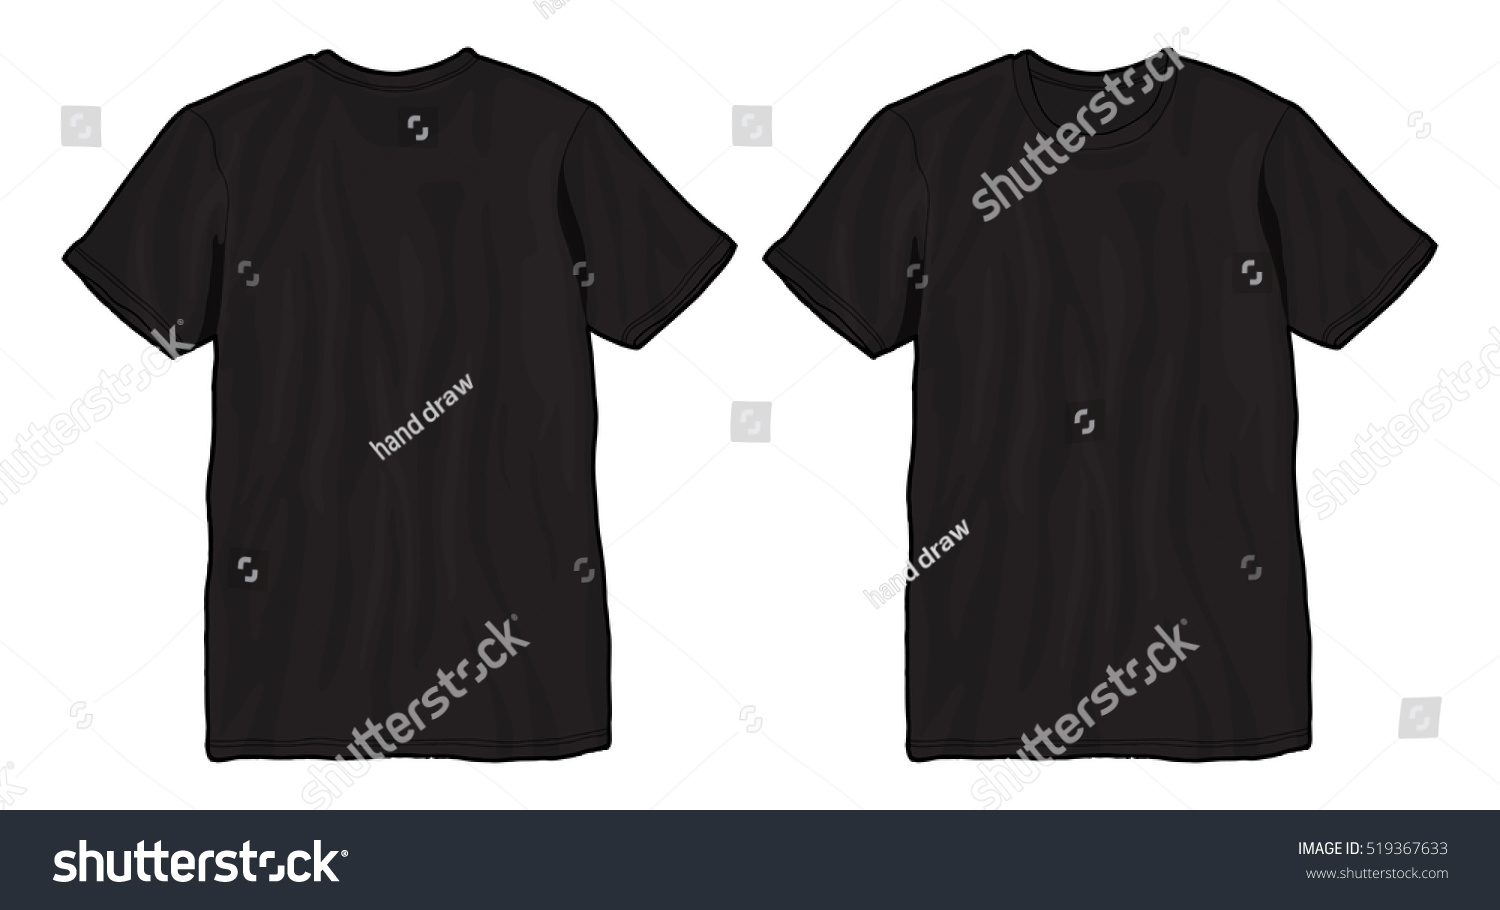 Black t shirt vector - Blank T Shirt Template Black T Shirt Vector